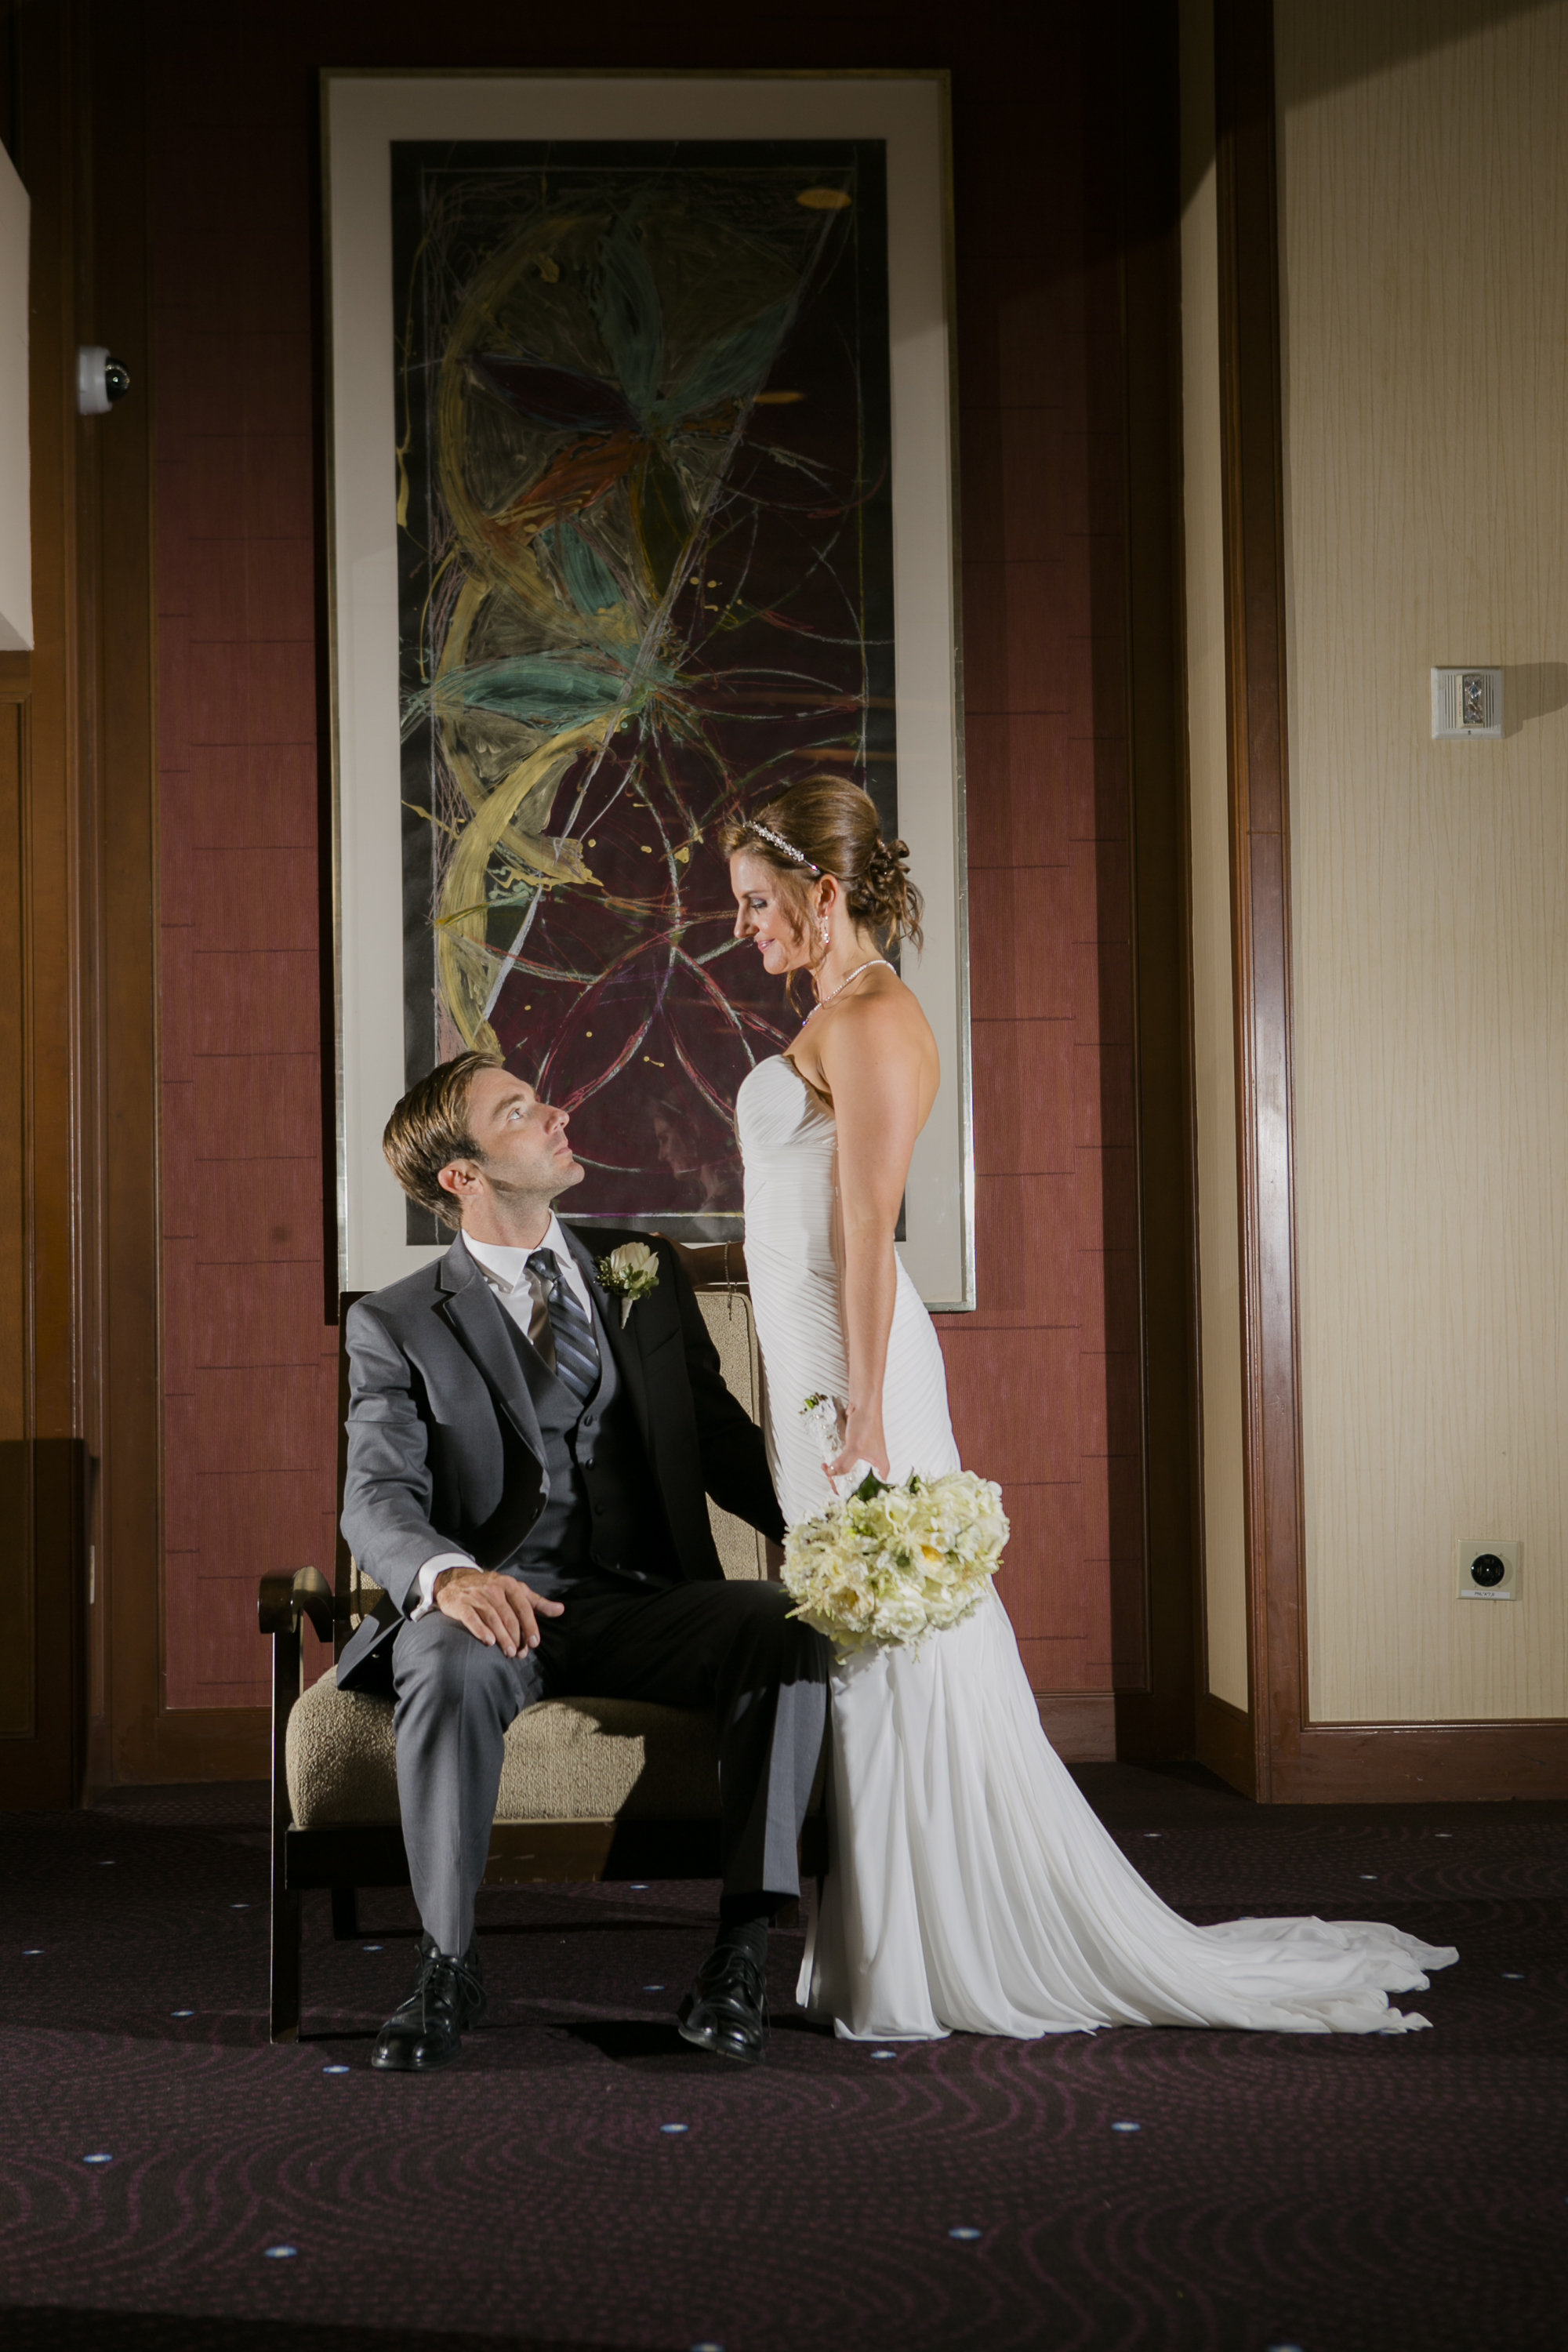 Stephanie Colby wedding Hilton La Jolla 9 27 2014-06 Bride and Groom-0041